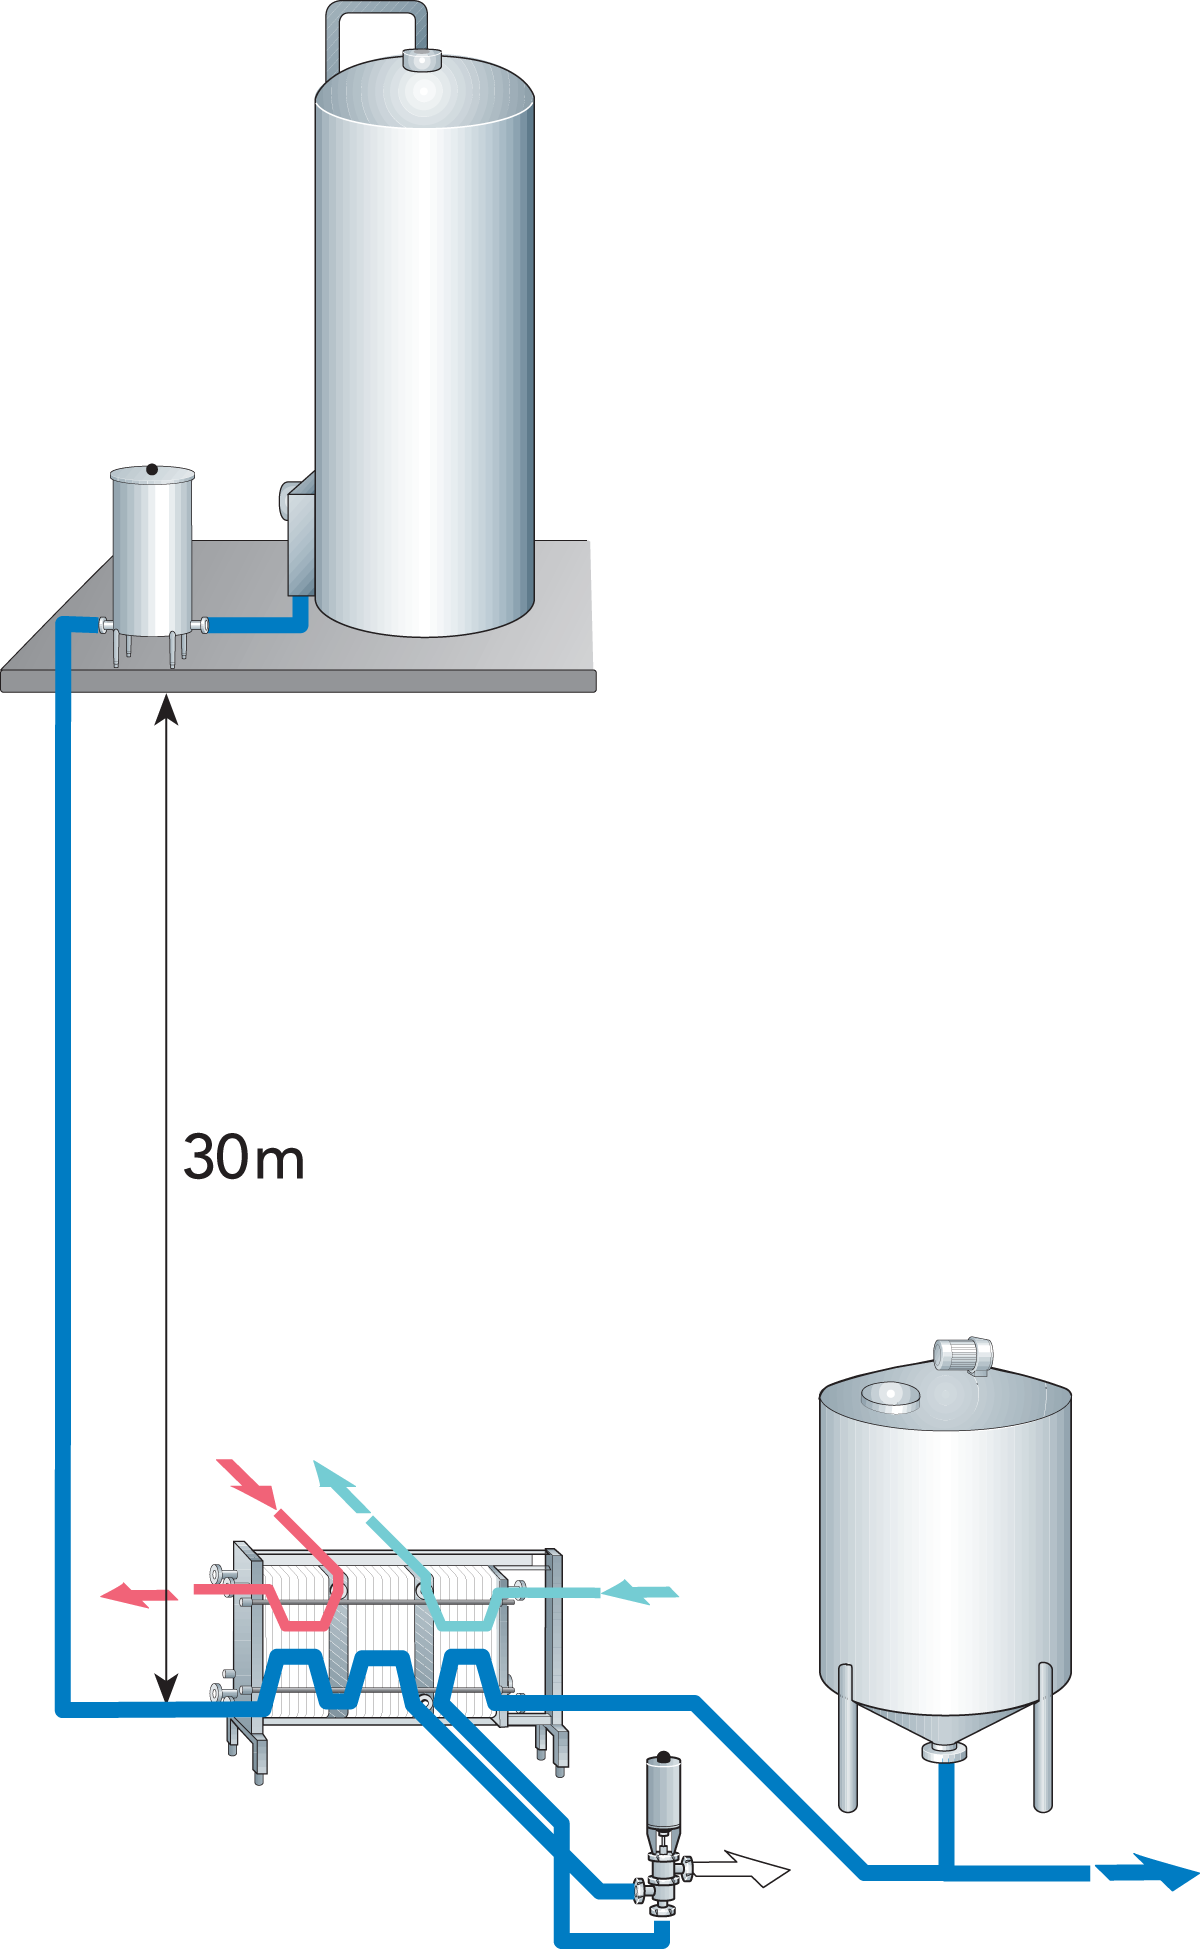 Designing A Process Line Dairy Processing Handbook Cheap Semi Automatic Tank Water Over Flow Controller Circuit Zoom